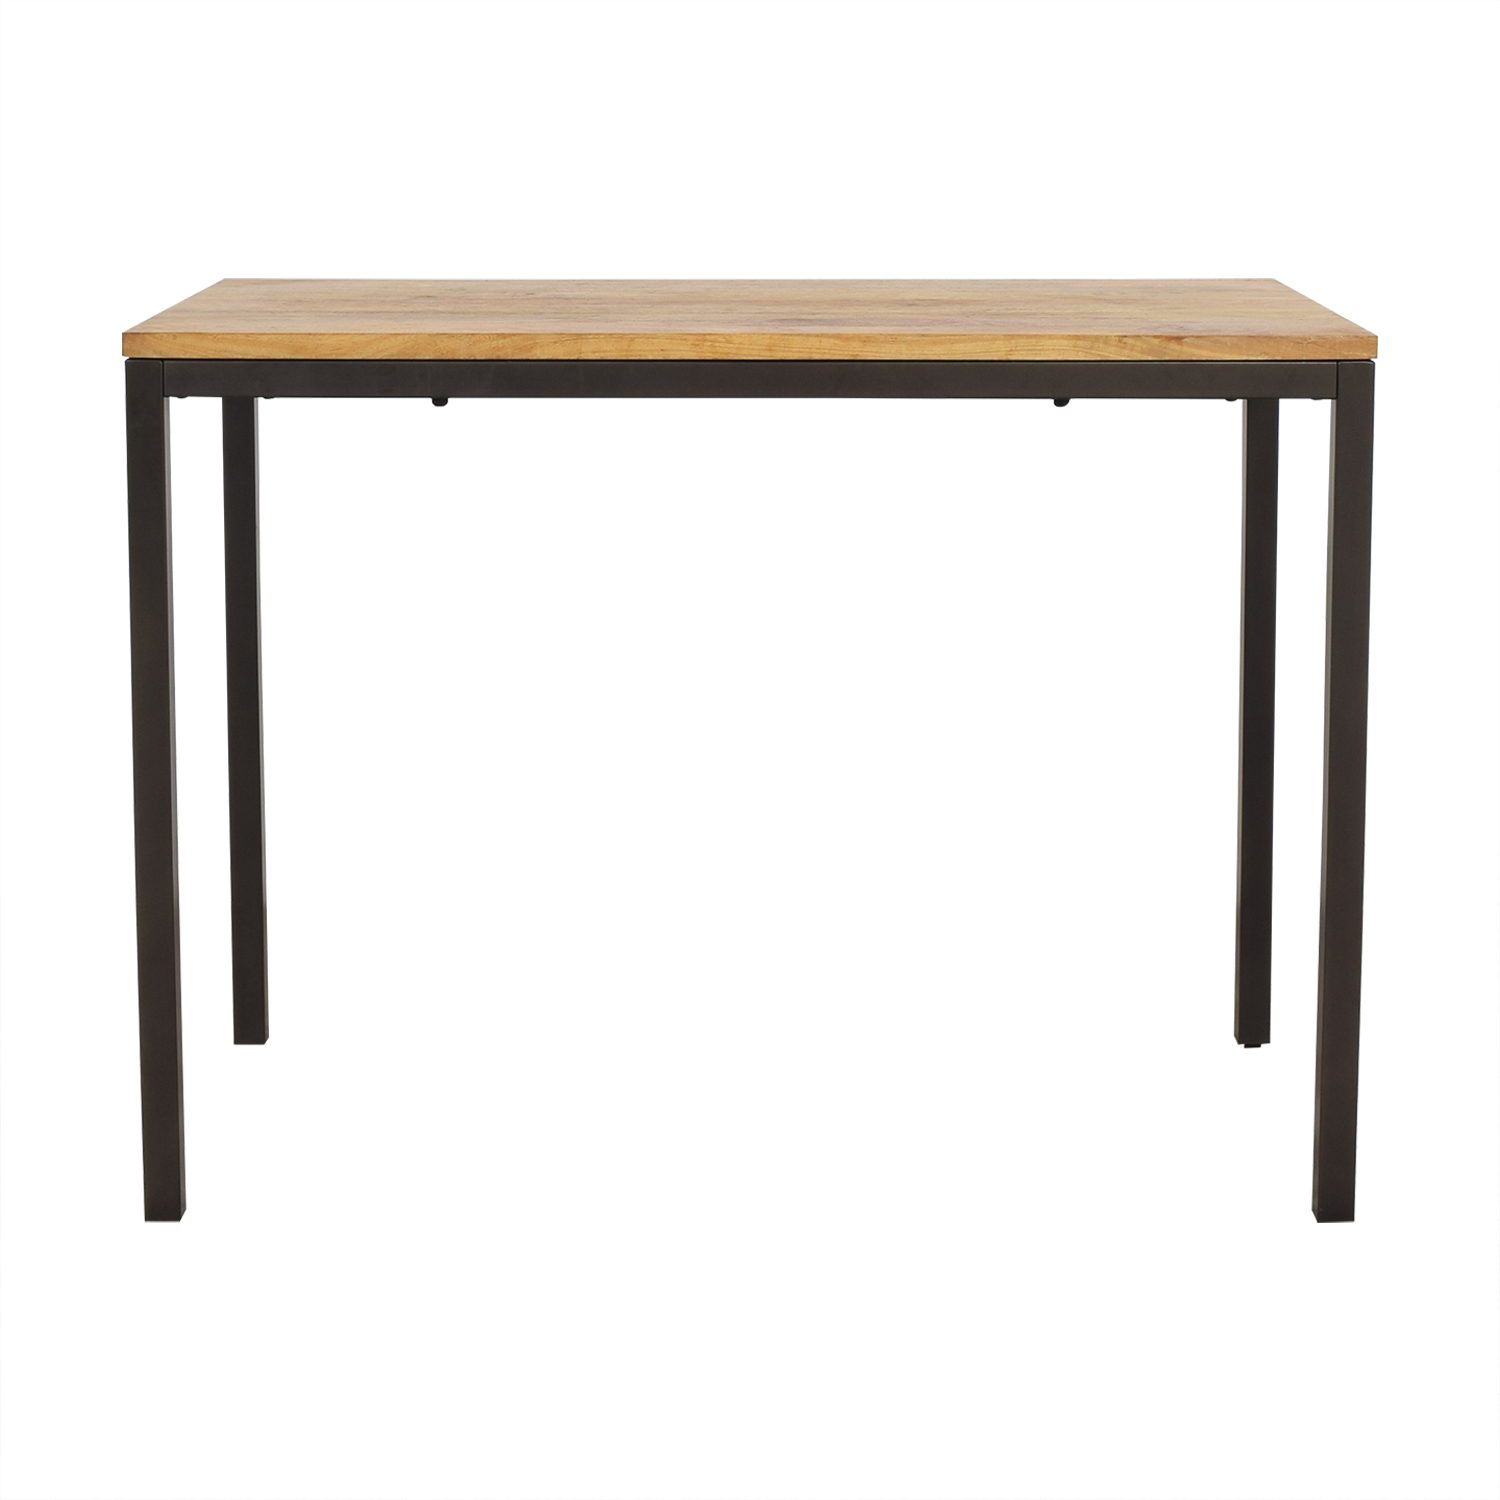 West Elm West Elm Box Frame Dining Table dimensions